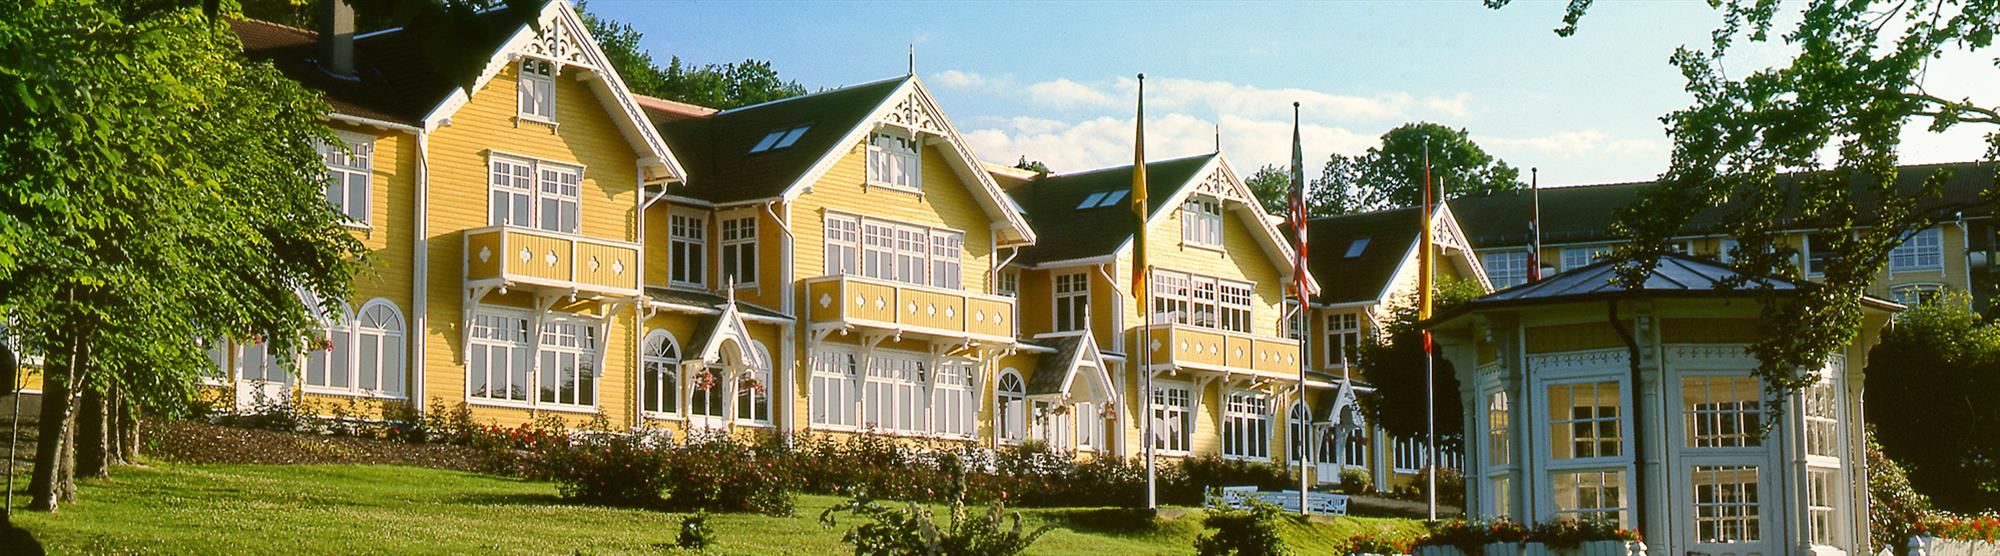 Fjord hotels